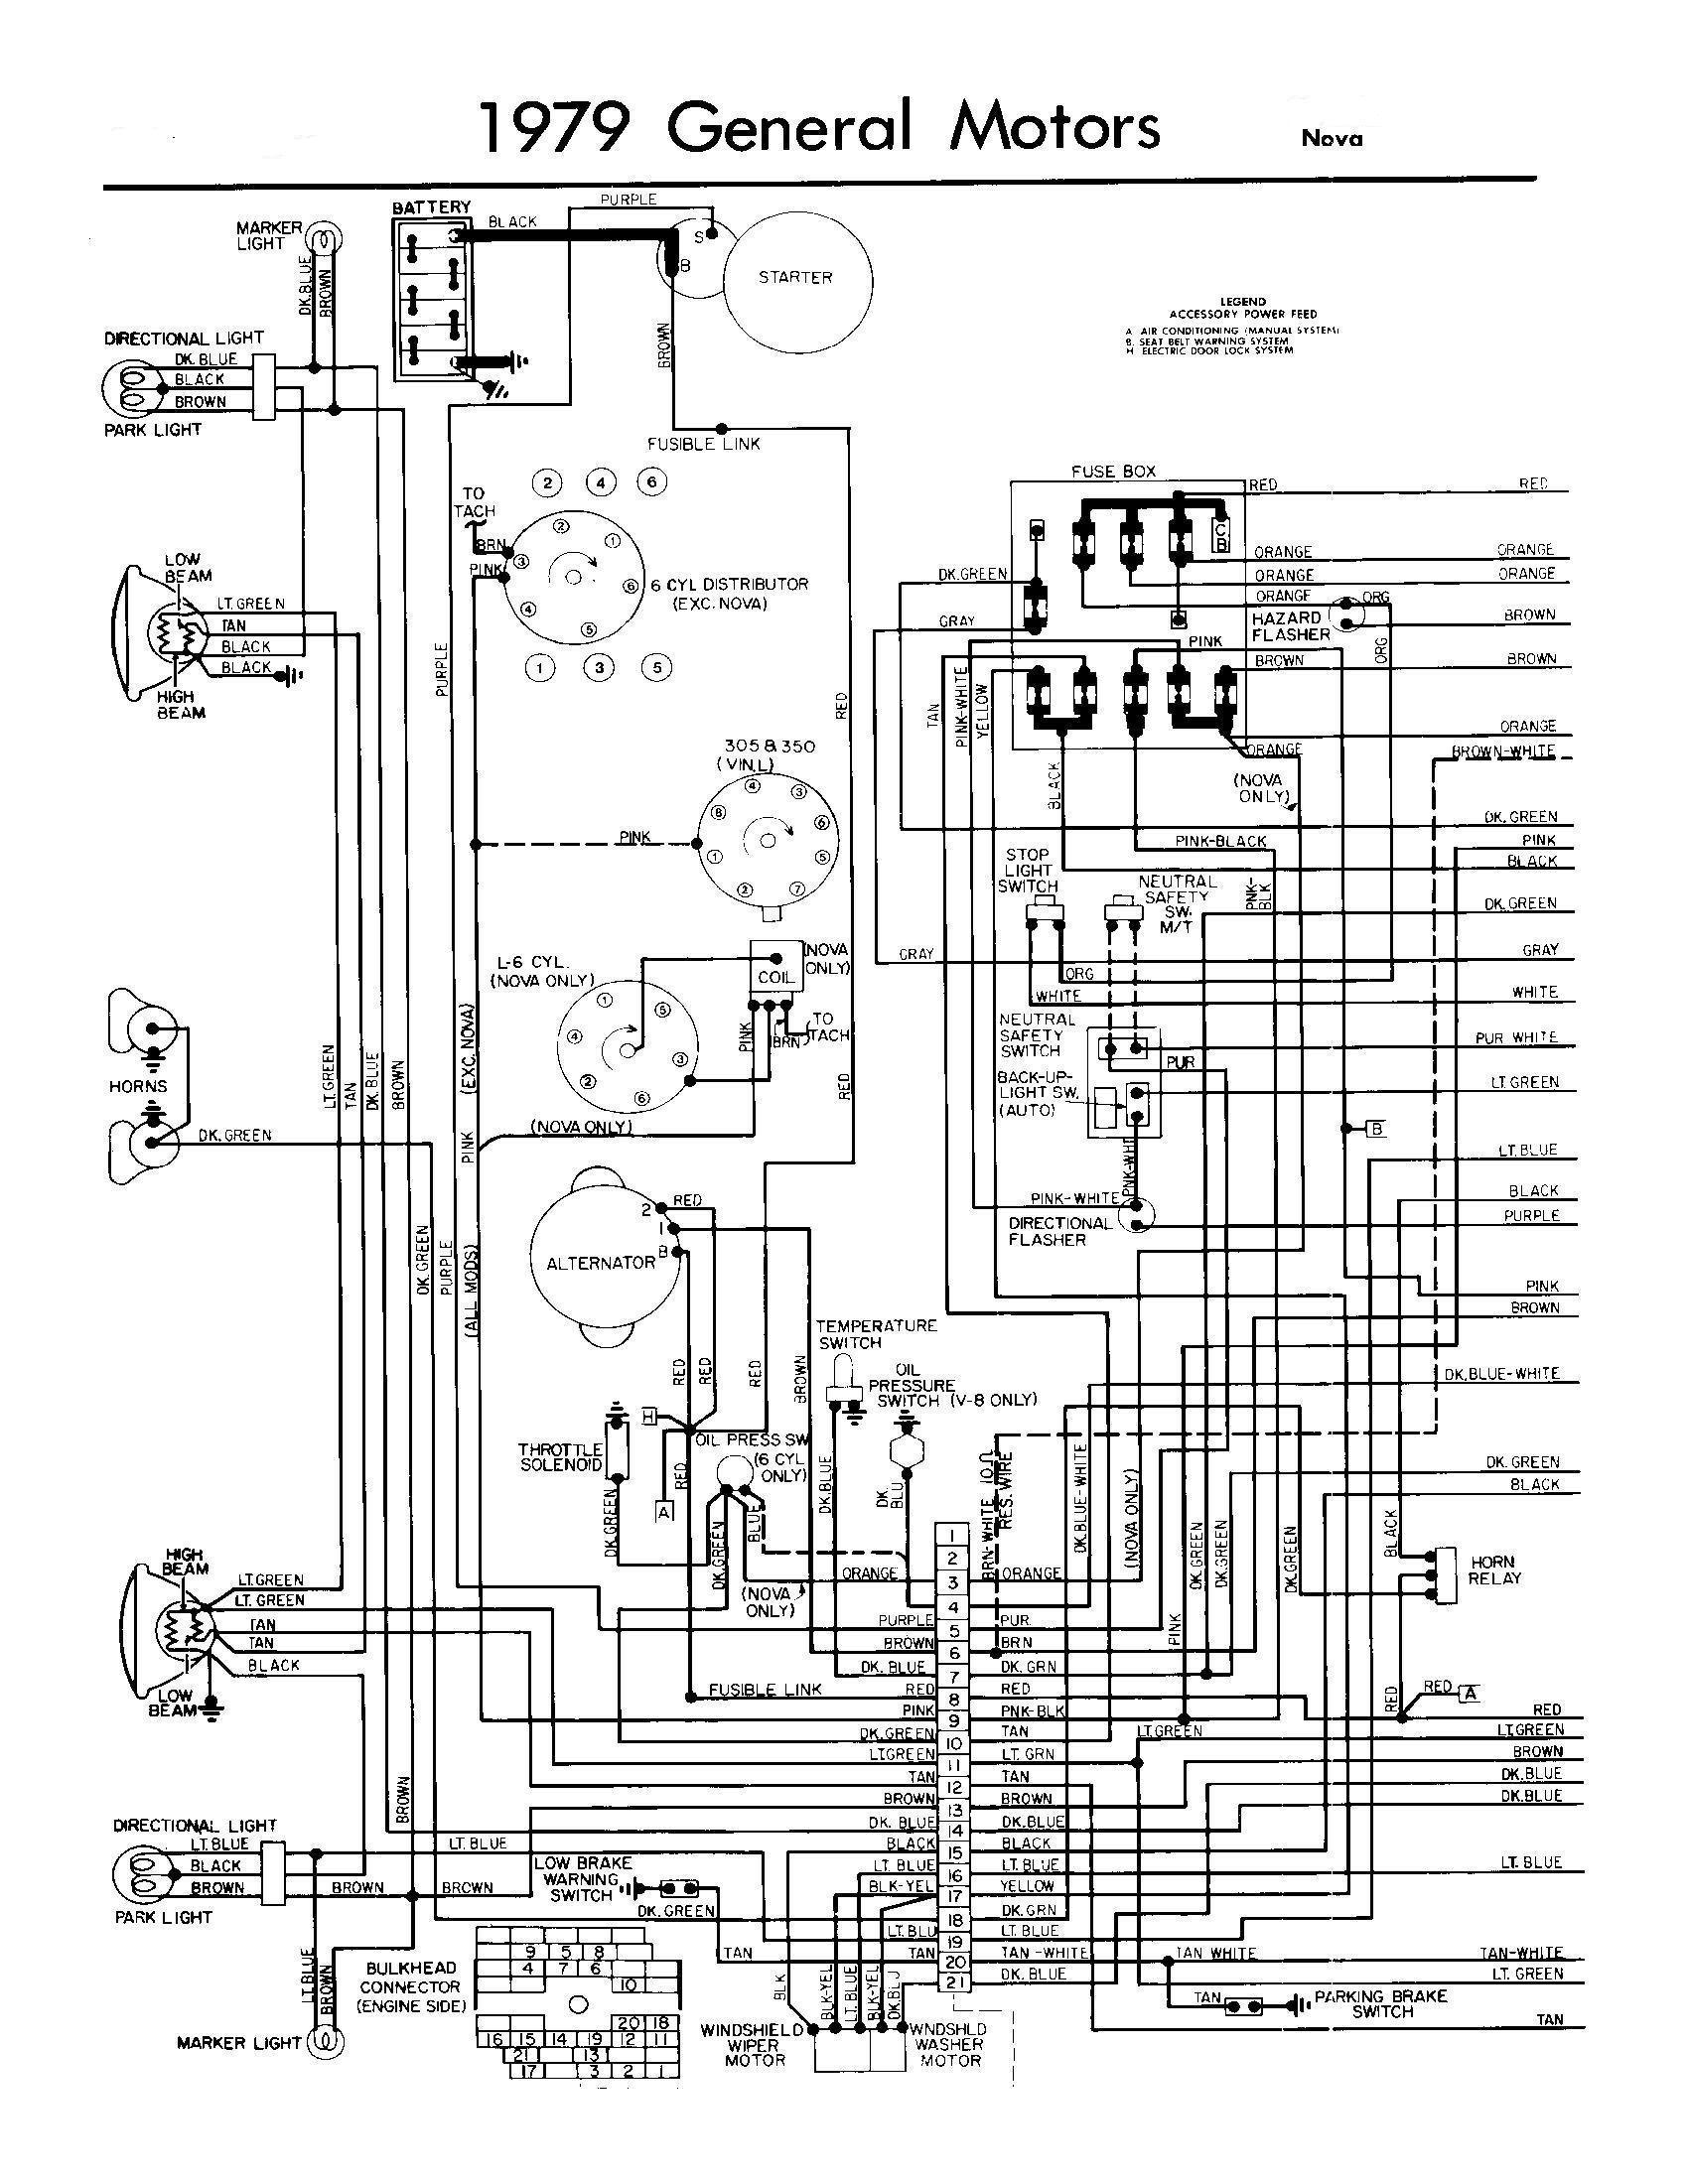 Pleasing Wiring Diagram As Well 350 Chevy Vacuum Diagram On 95 Buick Skylark Wiring Cloud Rdonaheevemohammedshrineorg